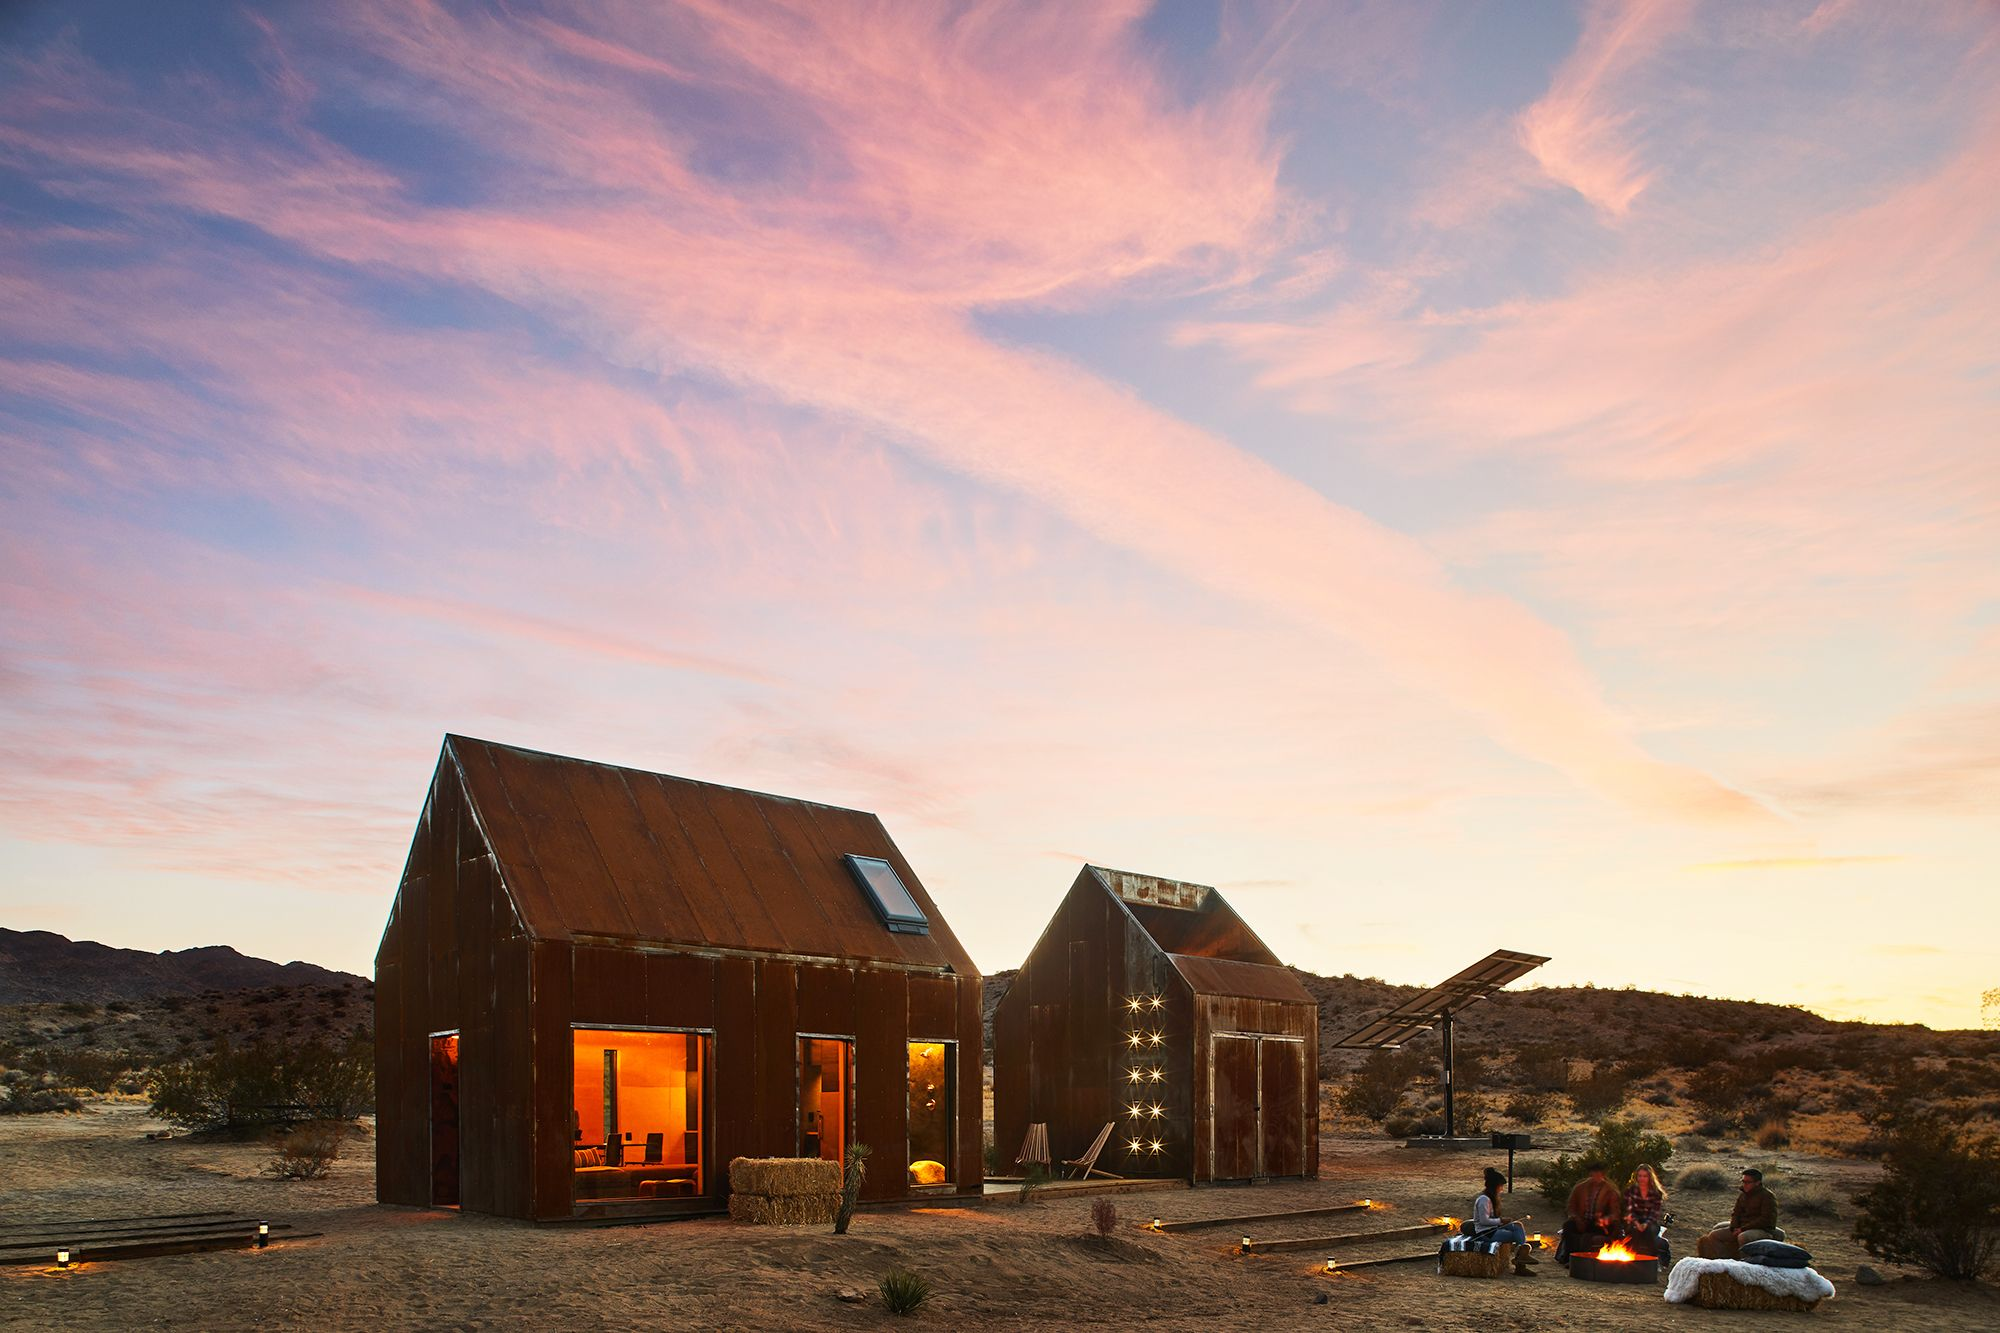 This Striking Joshua Tree Airbnb Needs to be on Your Travel Bucket List